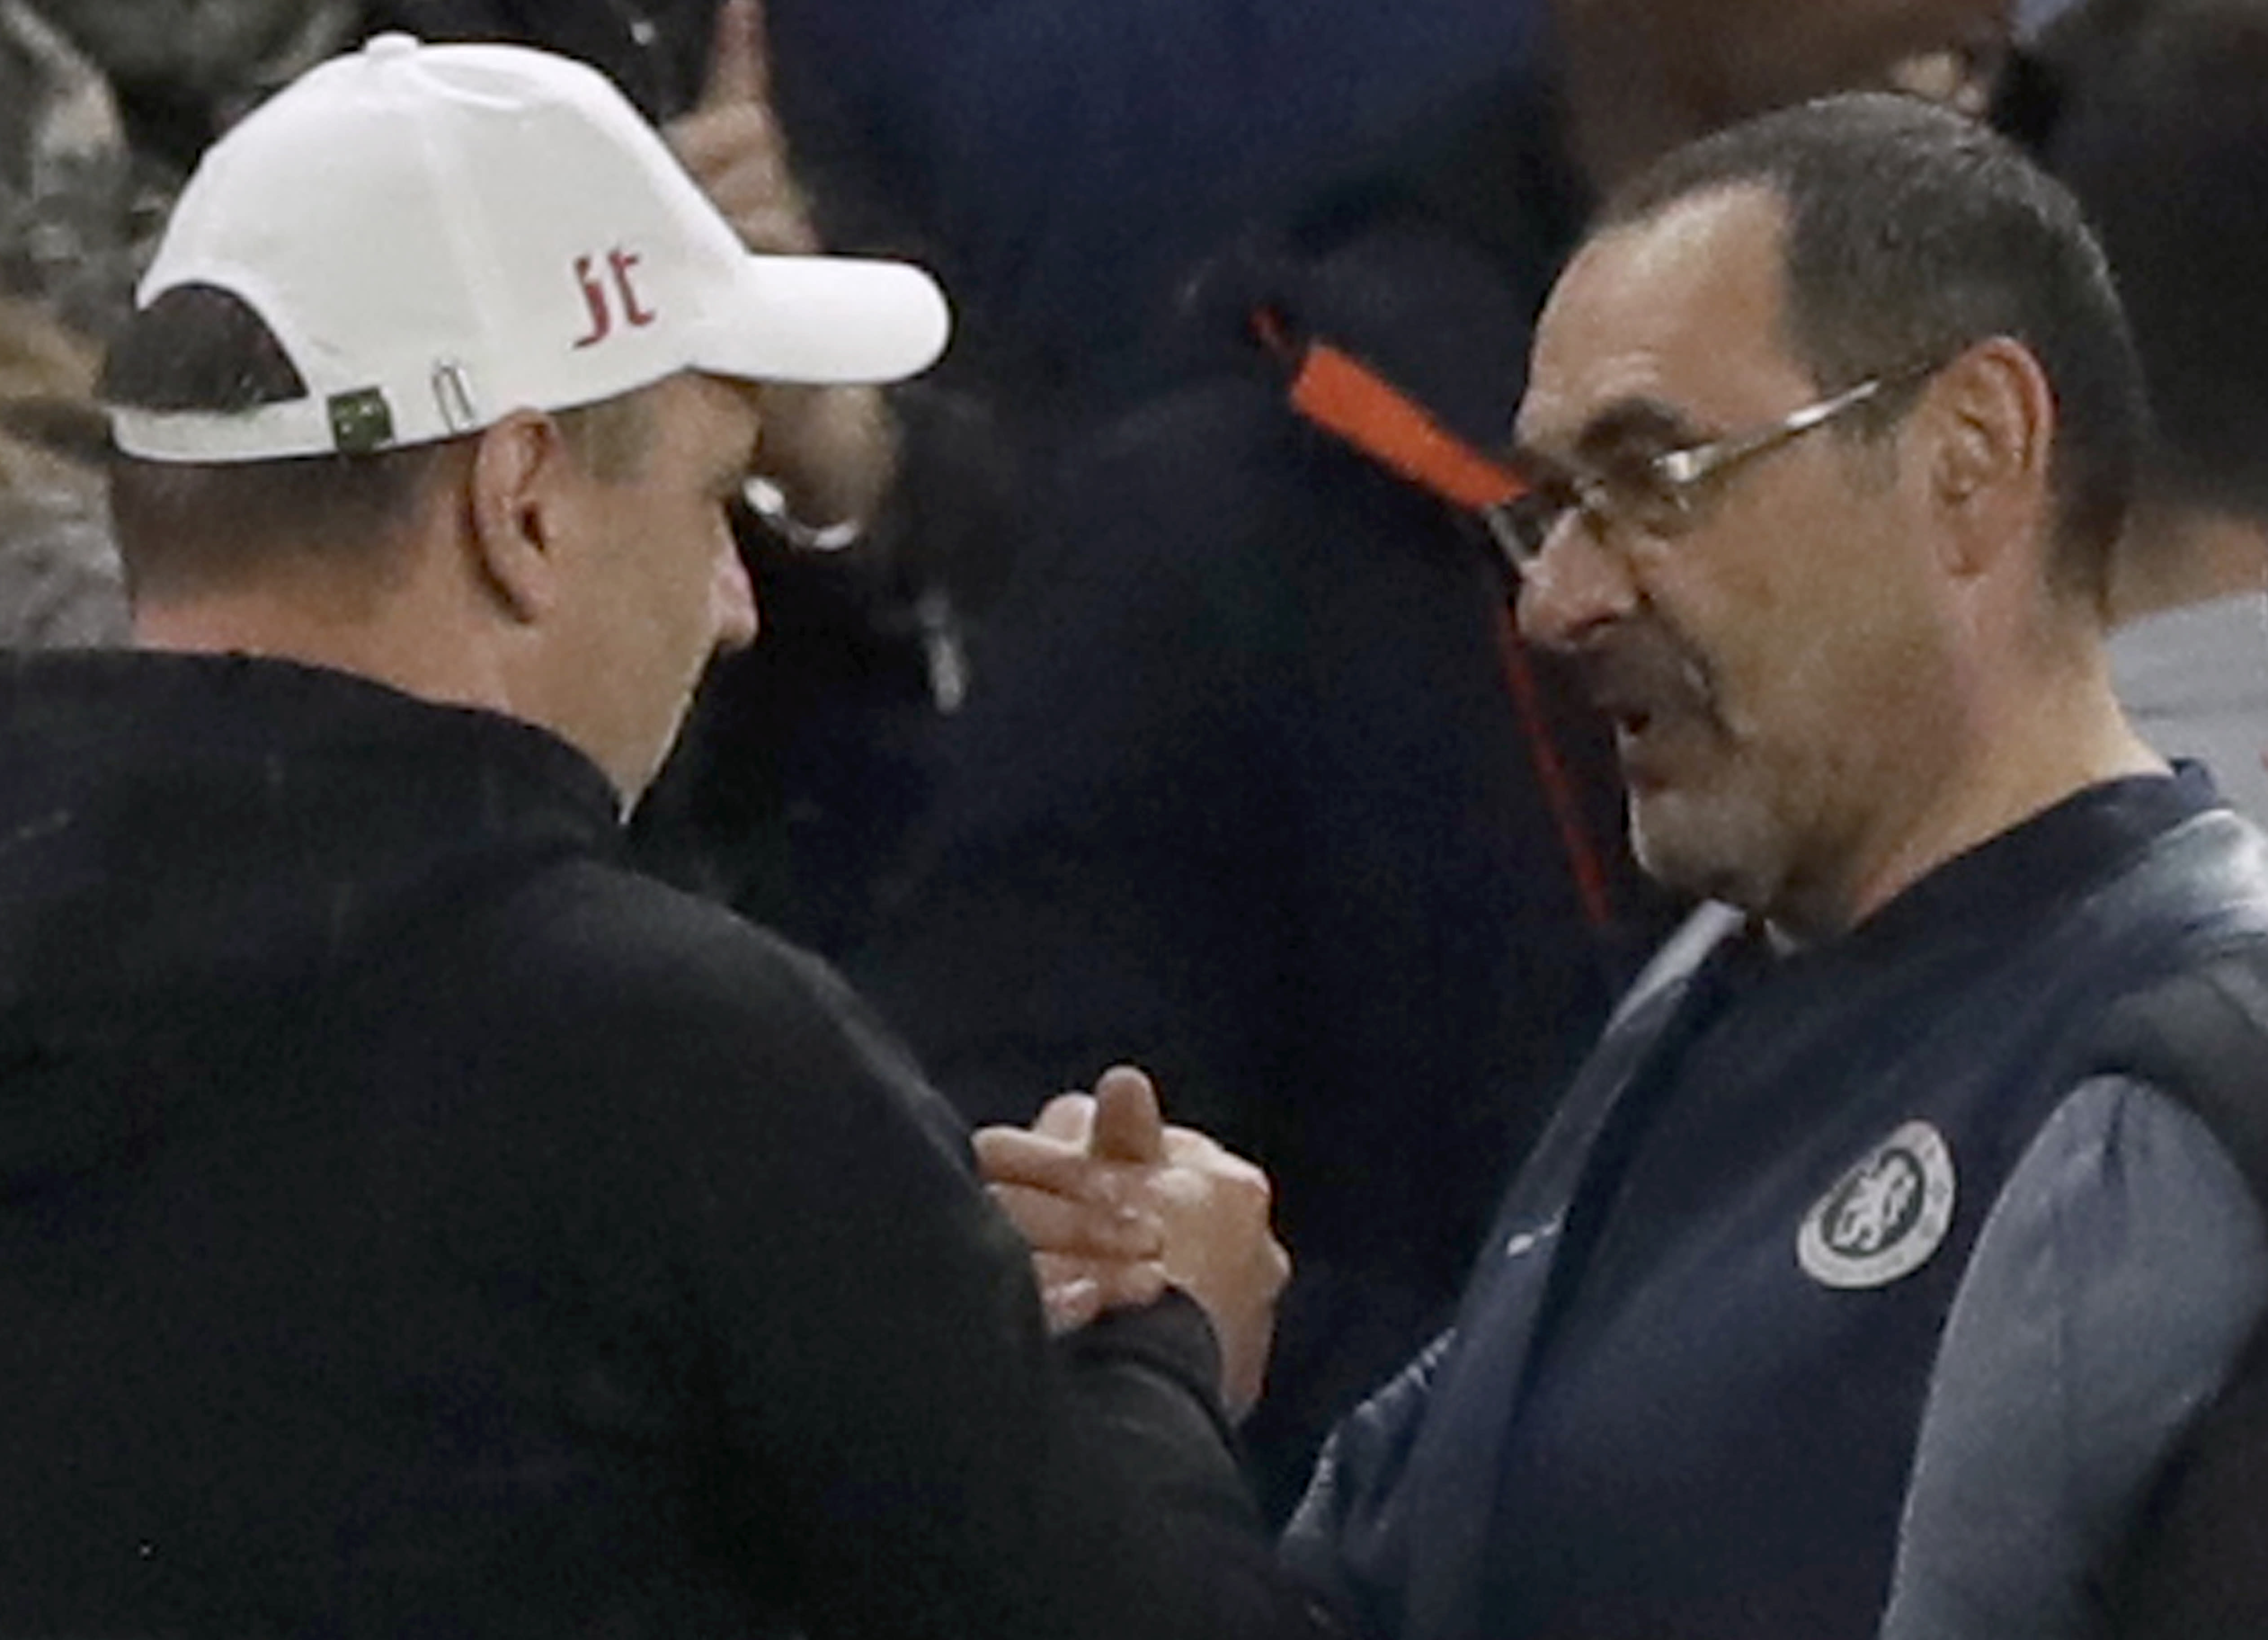 Slavia's coach Jindrich Trpisovsky, left, greets Chelsea head coach Maurizio Sarri, right, after the Europa League quarterfinal, second leg, soccer match between Chelsea and Slavia Prague at Stamford Bridge stadium in London, Thursday, April 18, 2019. (AP Photo/Matt Dunham)